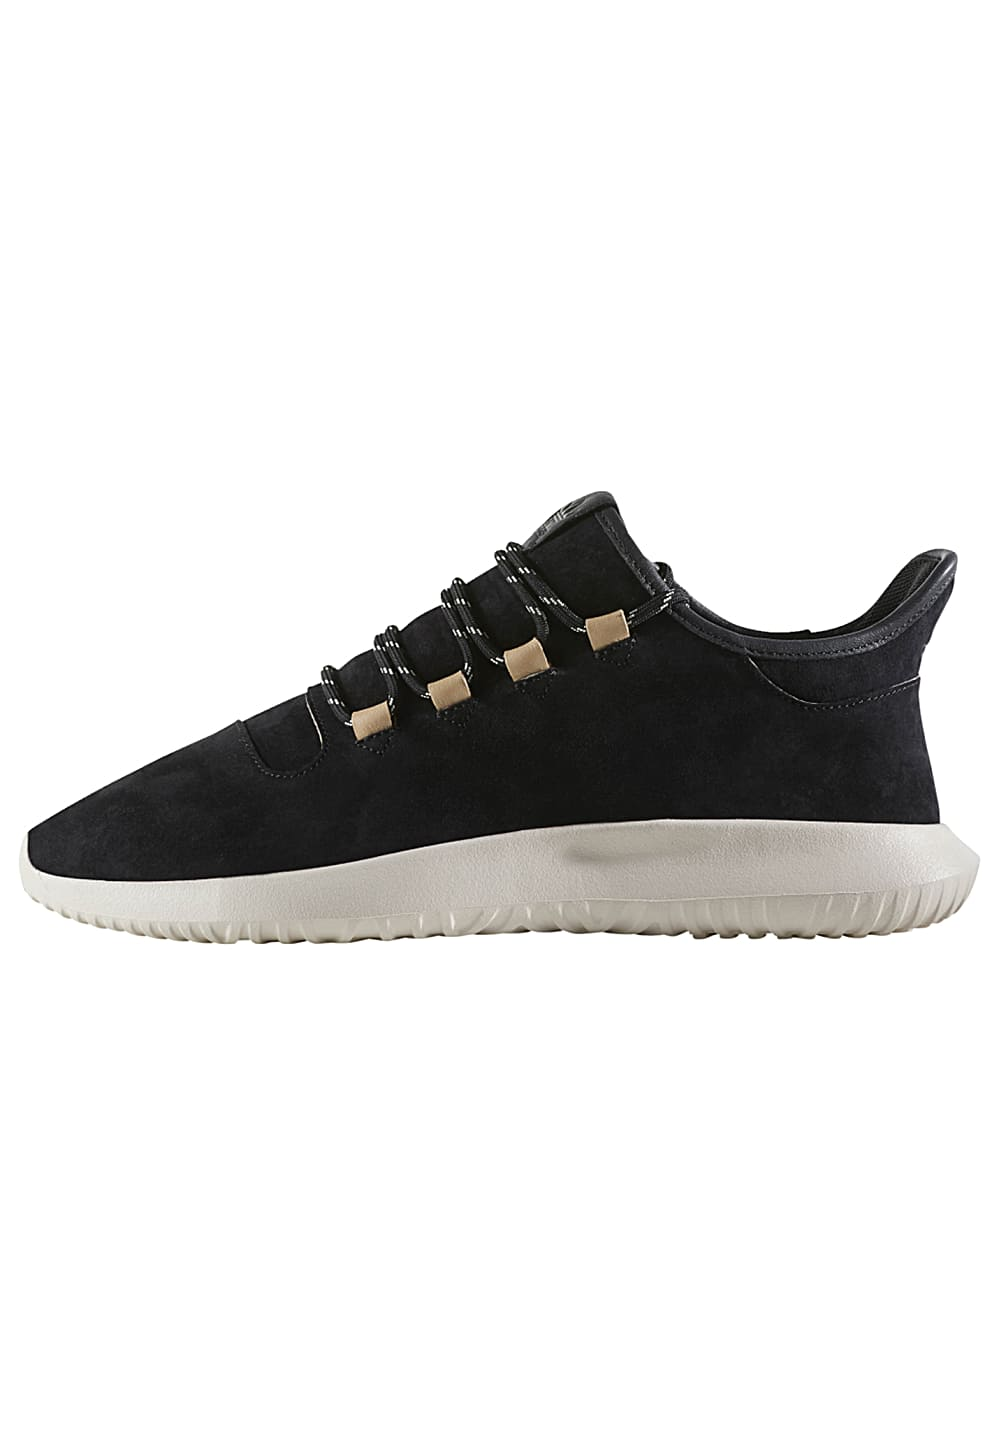 ADIDAS ORIGINALS Tubular Shadow Baskets pour Homme Noir